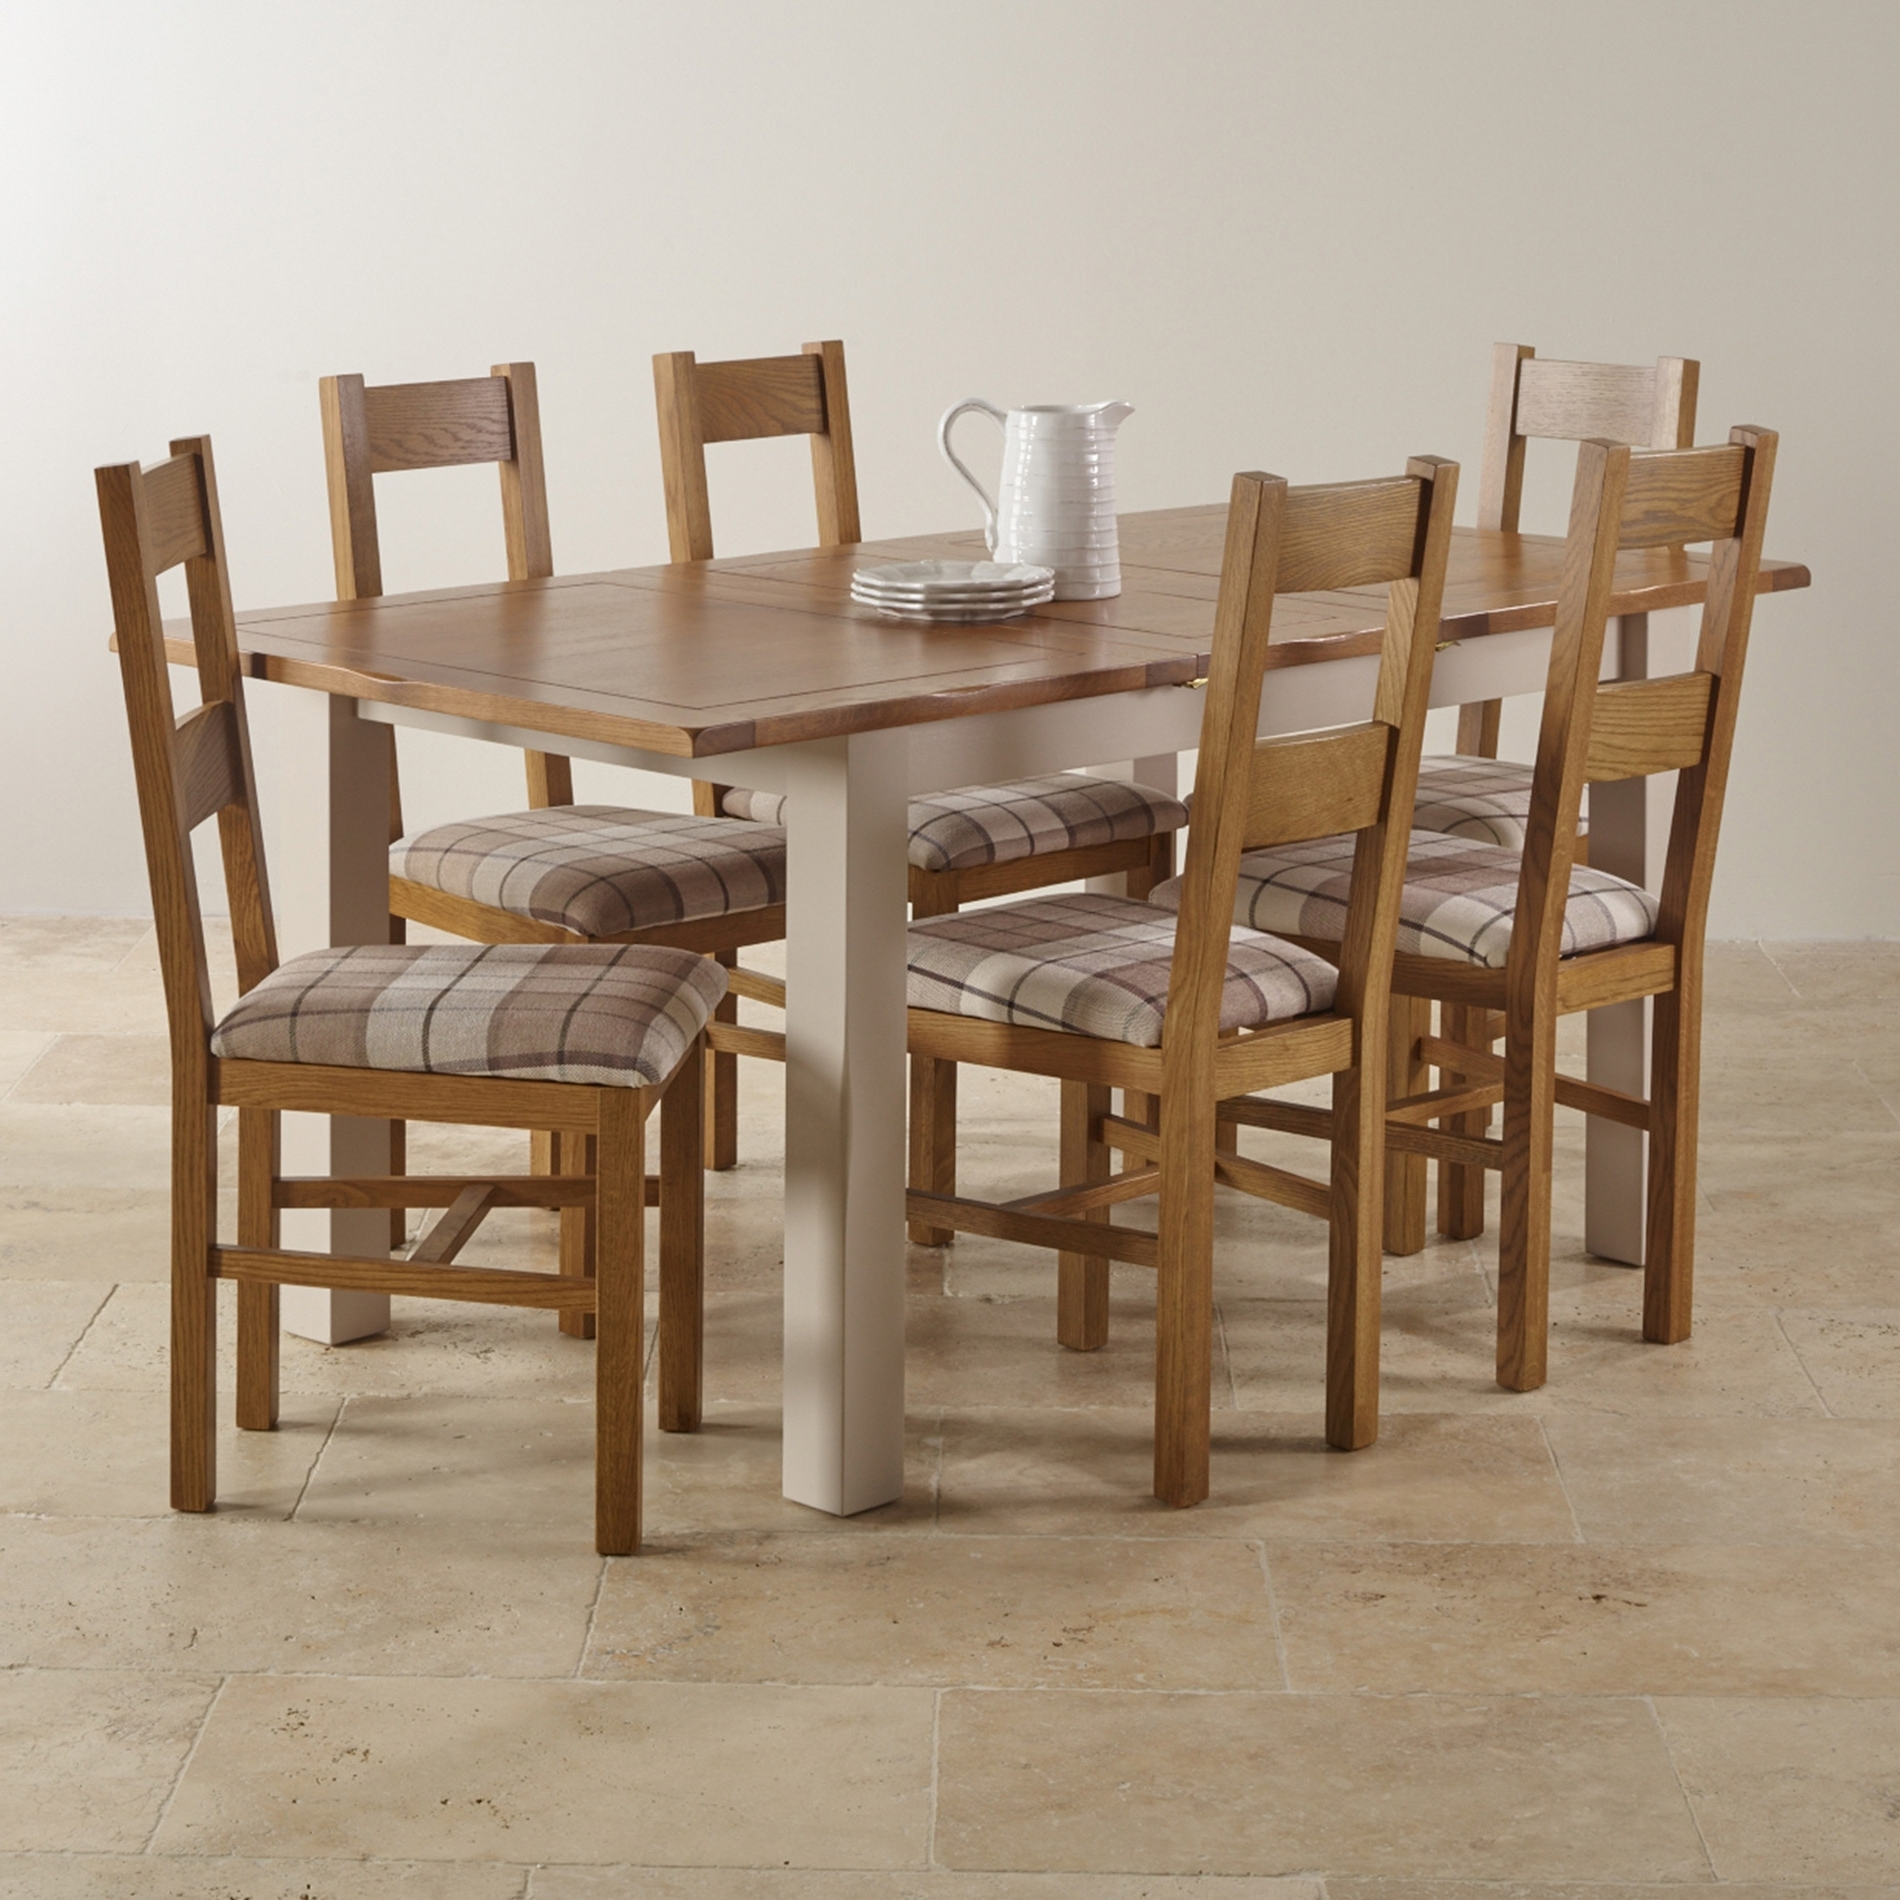 Chunky Solid Oak Dining Tables And 6 Chairs Within Most Recently Released Large Glass Set Grey Seats Gold Rattan Folding Small Room Chairs (View 9 of 25)